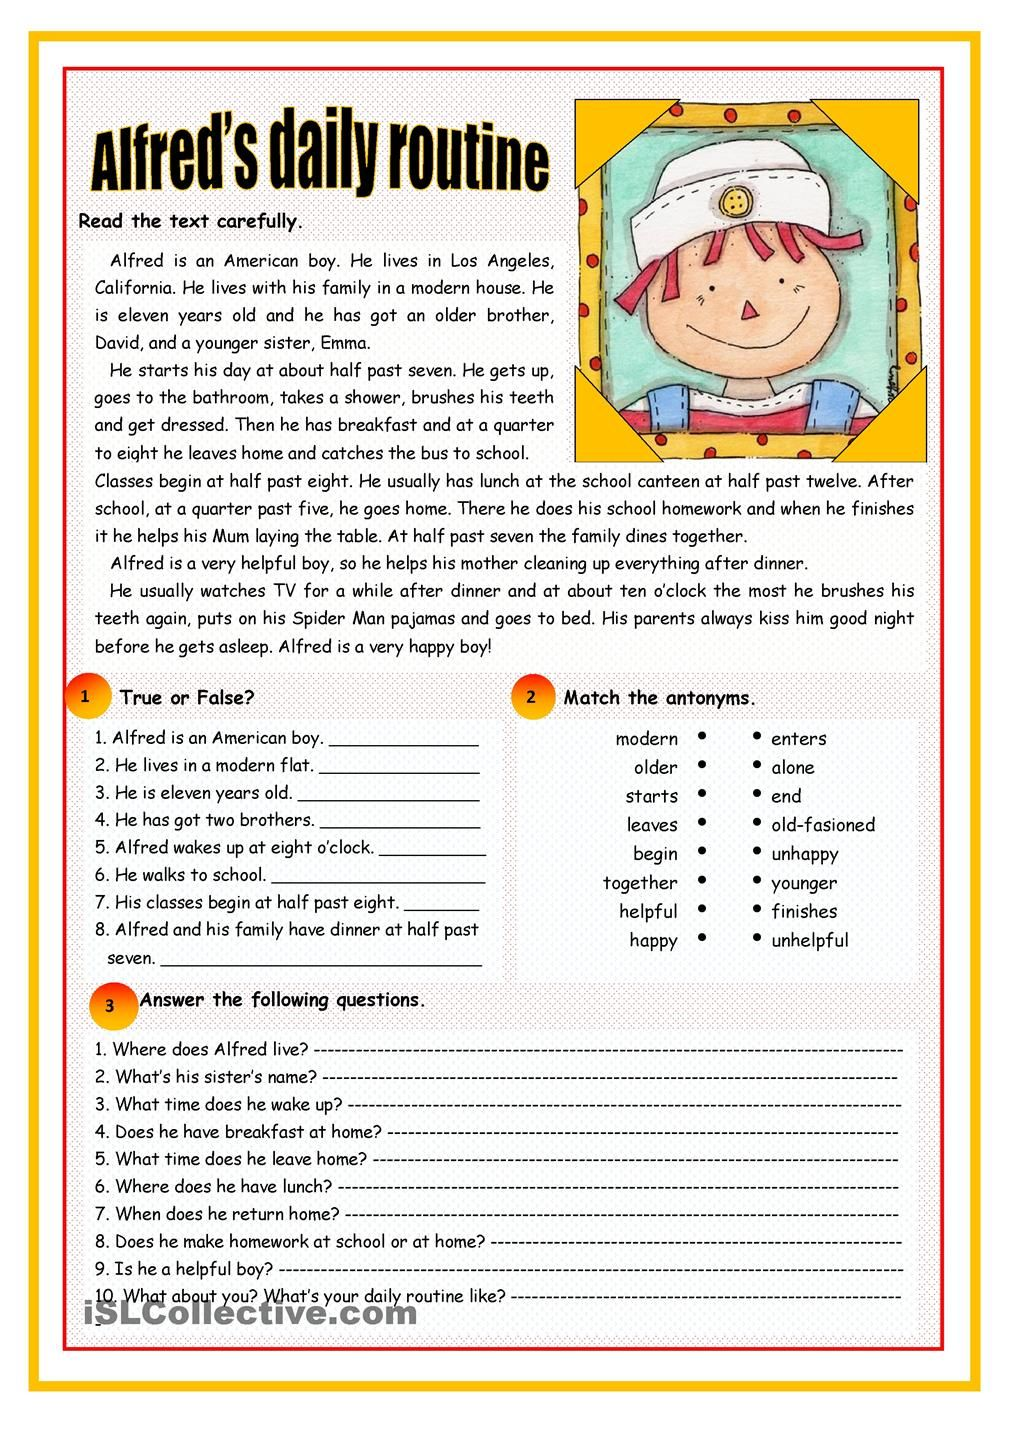 alfreds daily routine worksheets activities the alfreds daily routine